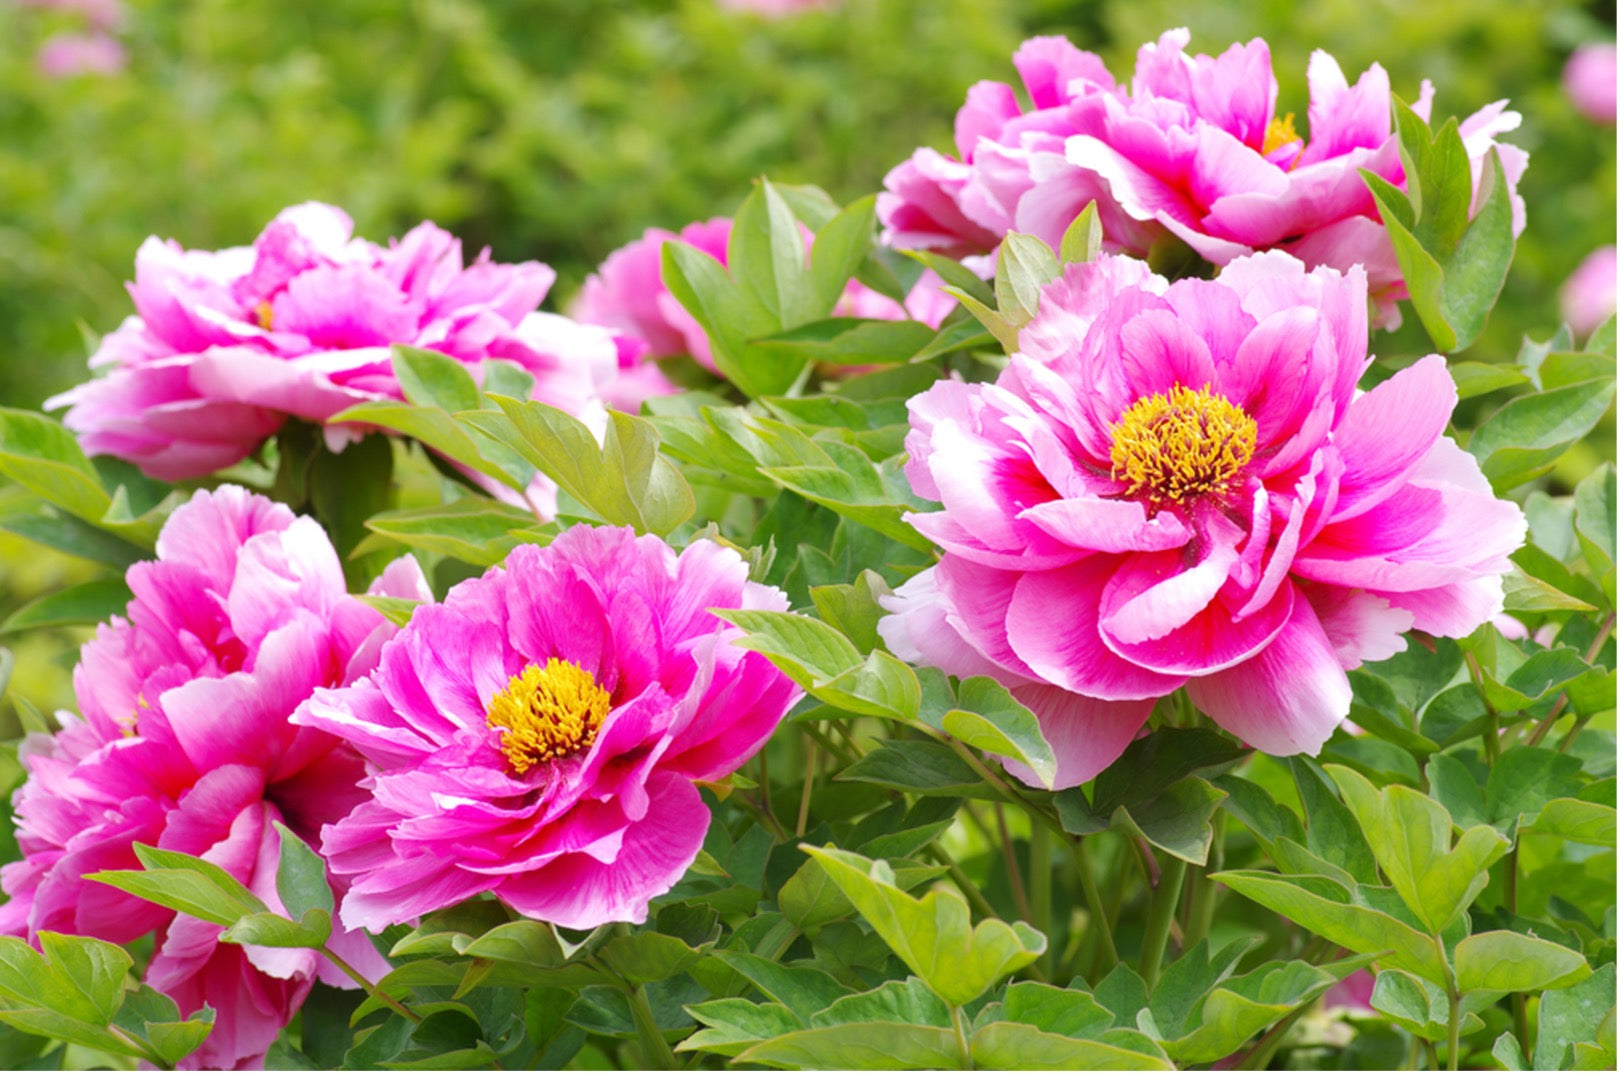 The Peony Flower in History